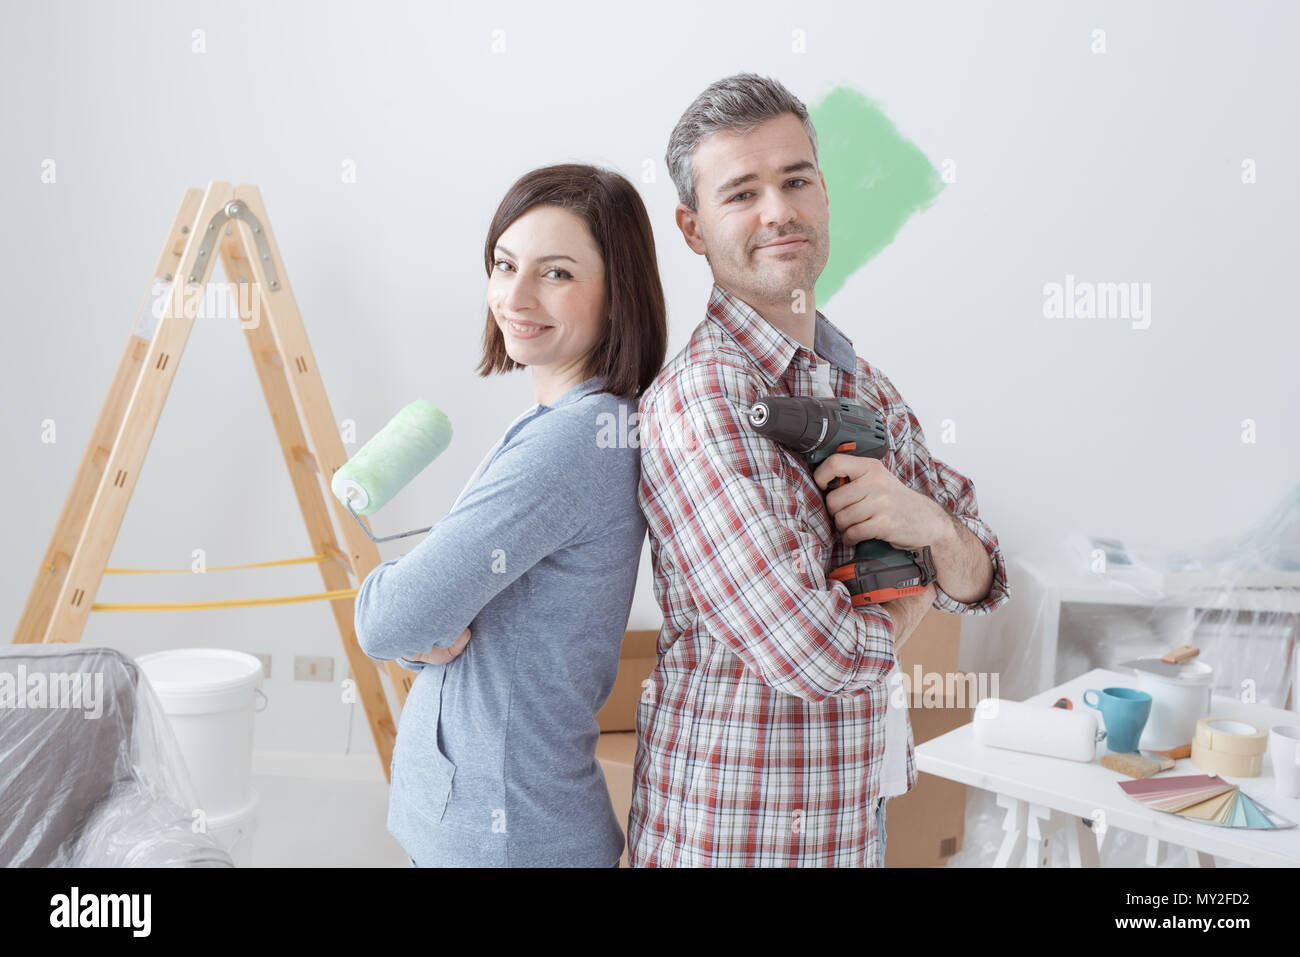 Smiling loving couple doing home renovations, the woman is holding a paint roller and the man is using a drill - Stock Image